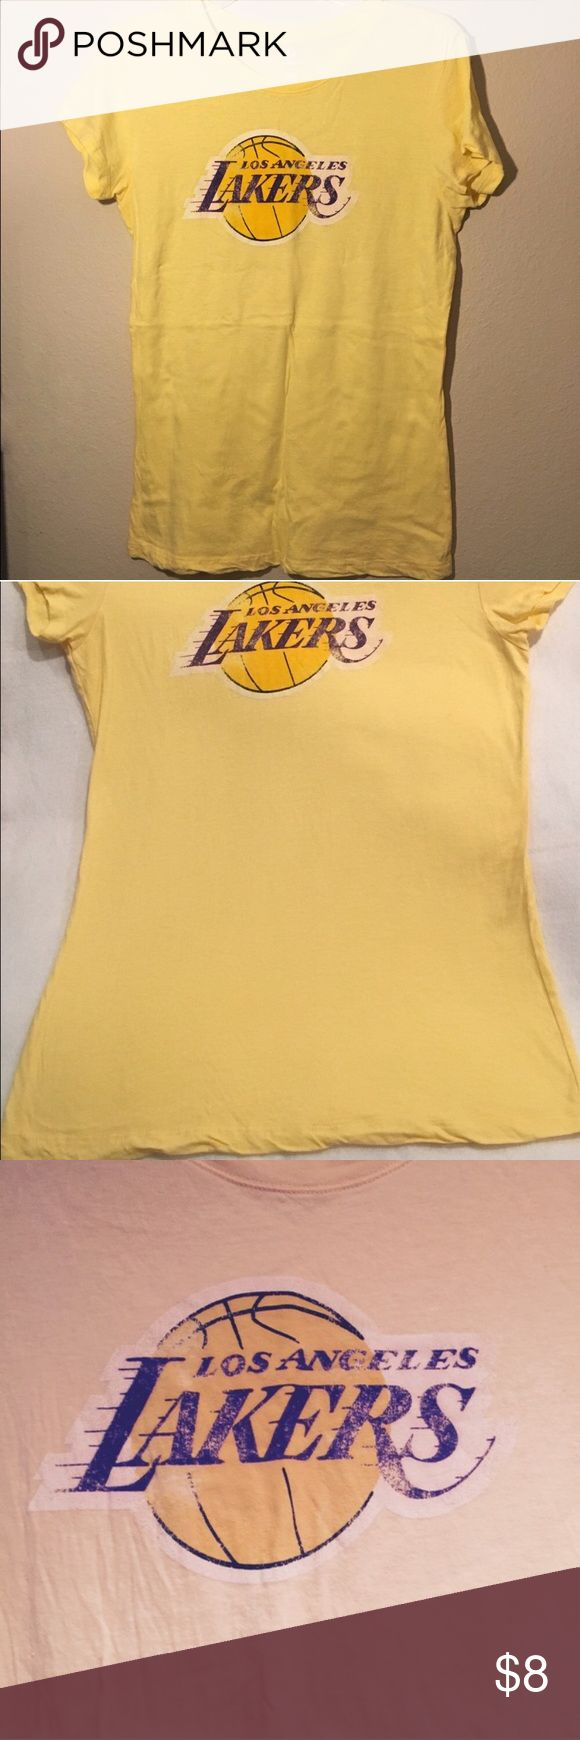 "Women's: Los Angeles Lakers t-shirt Yellow L.A. Lakers t-shirt. Lettering is NOT faded/smeared. This is how the shirt was made. My ex is a season ticket holder and he bought this for me before we went to a game. I only wore it that night for a few hrs, washed it and it's been hanging in my closet since. 17"" from Armpit to Armpit. **NOTE: color is more the 1st/2nd pic  Ask any questions before purchasing!! 💝  🚭 Smoke Free House 🐶 Pet Free House ✅ Bundle Discount 👎 Low Ball Offers 🚫 No…"